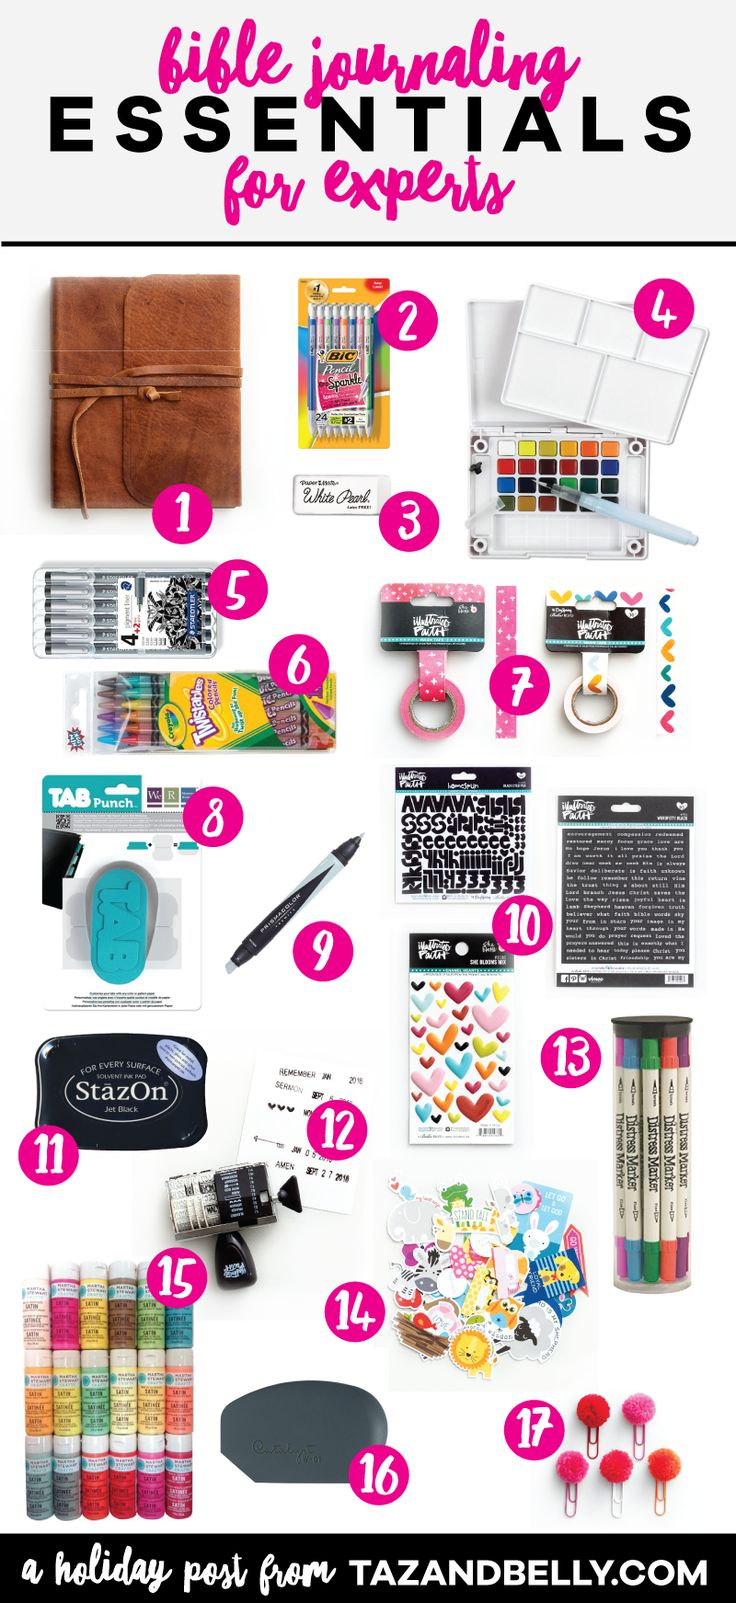 Try this Bible Journaling Holiday Gift Guide for Experts if you're looking to upgrade your current stash. Maybe you're shopping for someone who wants to leave no supply behind. This gift guide includes all of my favorite journaling supplies, along with a few splurges and upgrades. tazandbelly.com